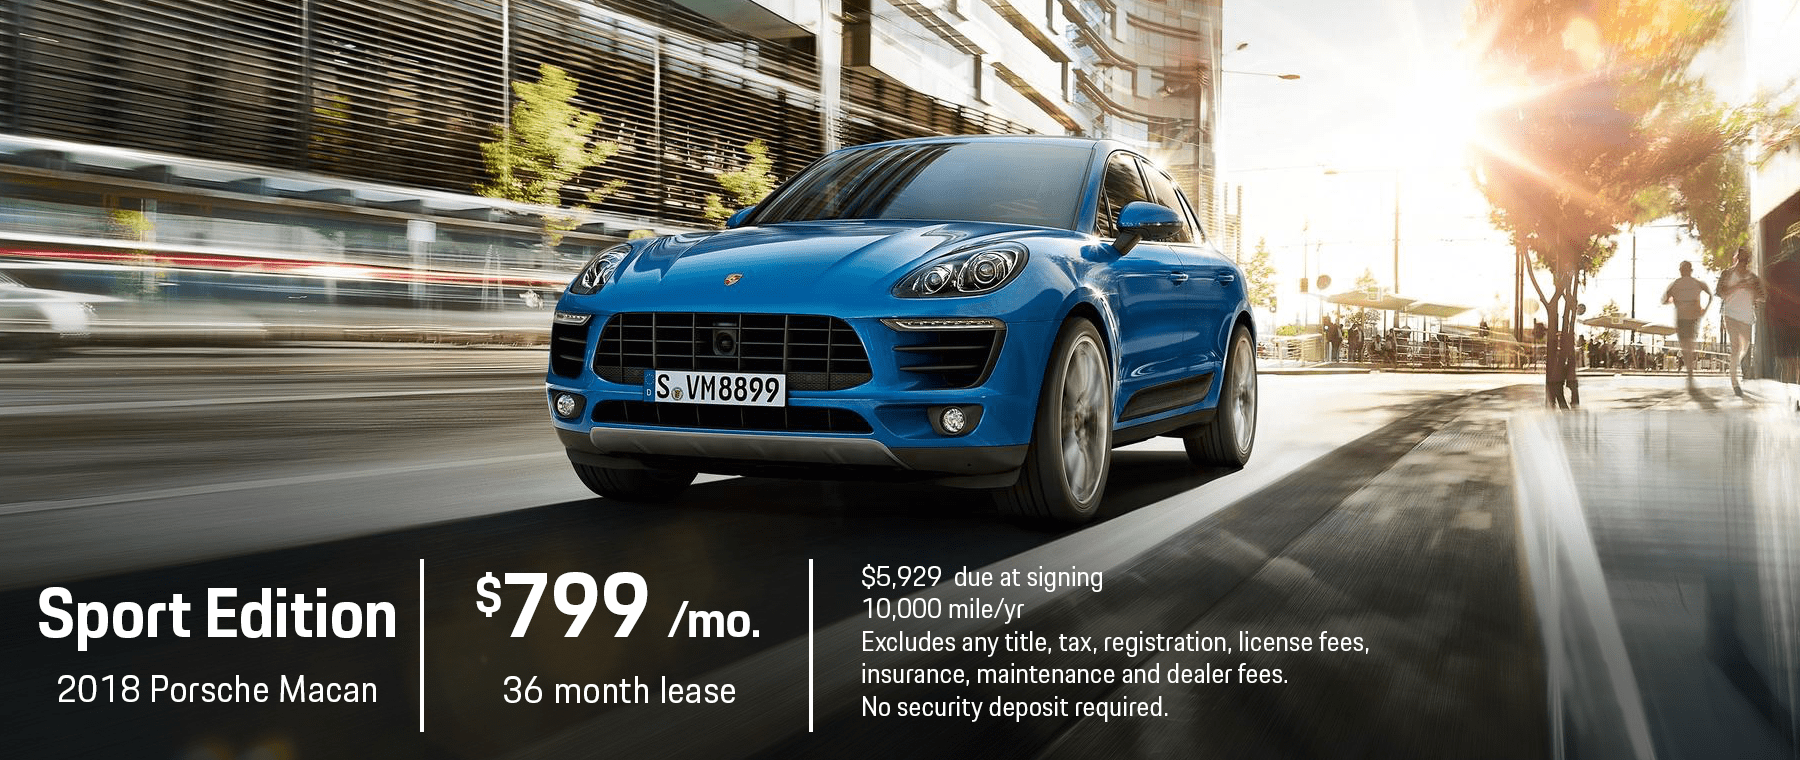 Porsche Macan Sport Edition Lease Offer